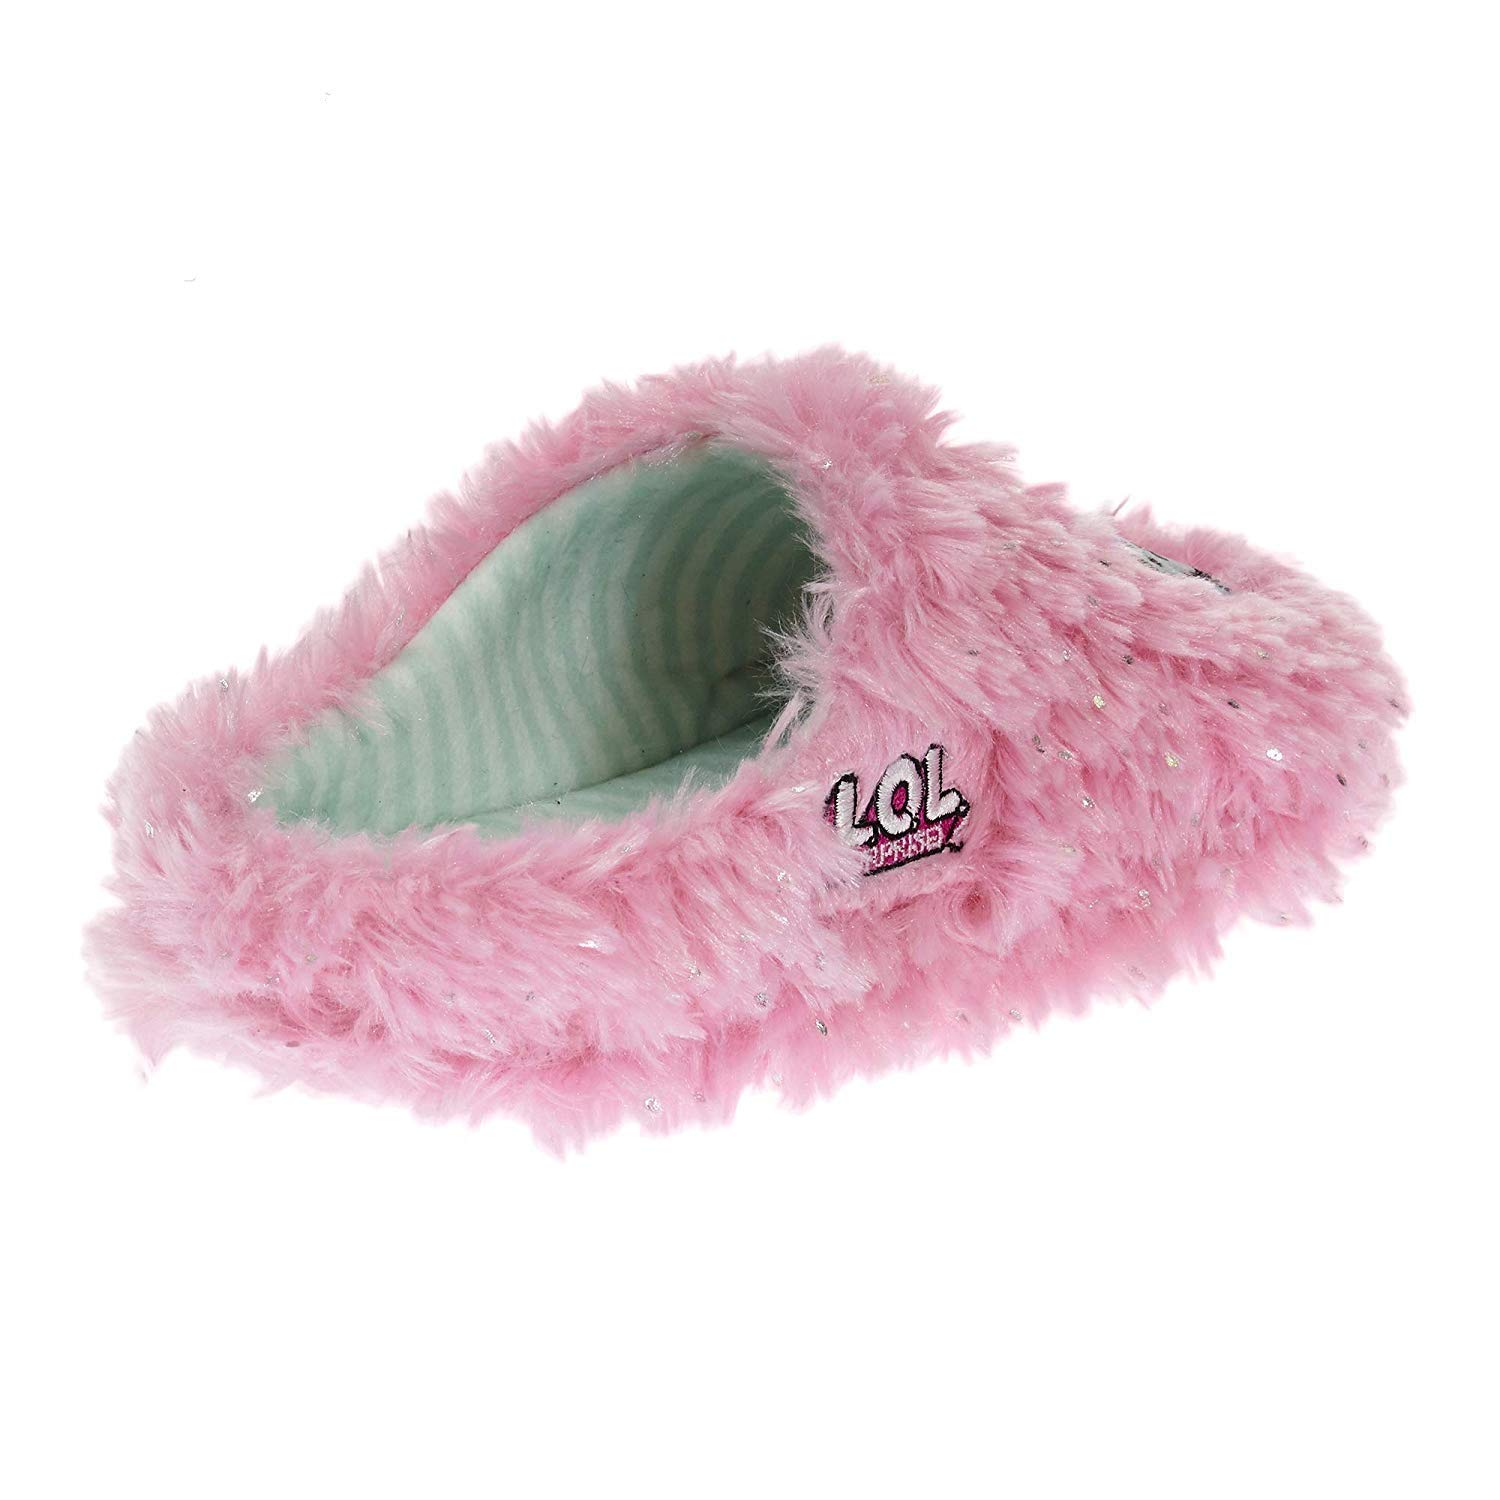 Surprise Girls Micro Terry Plush Clog Slip On Slippers L.O.L